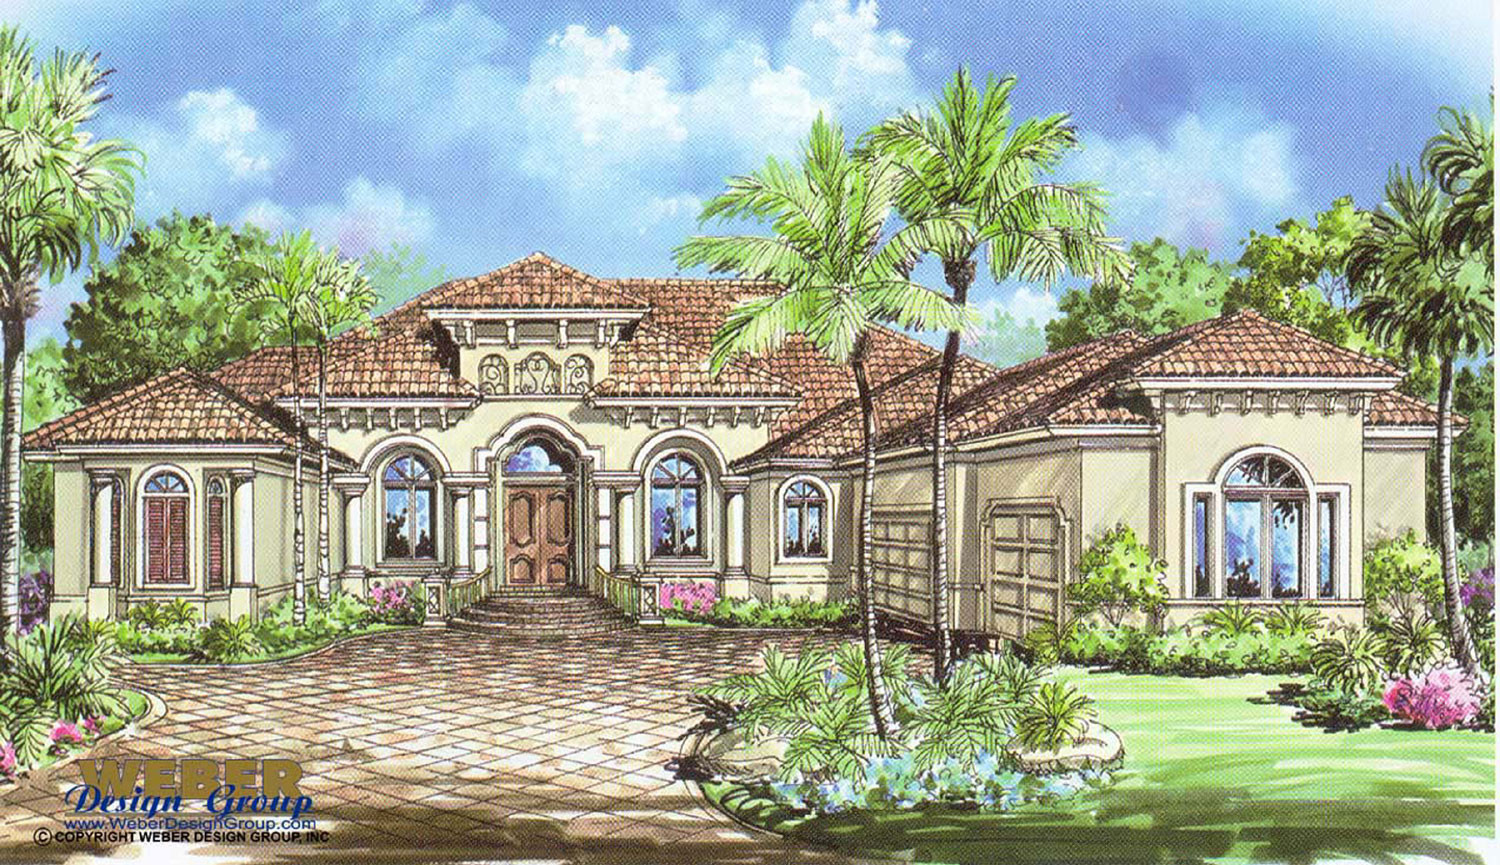 Mediterranean House Plan: 1 Story Mediterranean Floor Plan with Pool